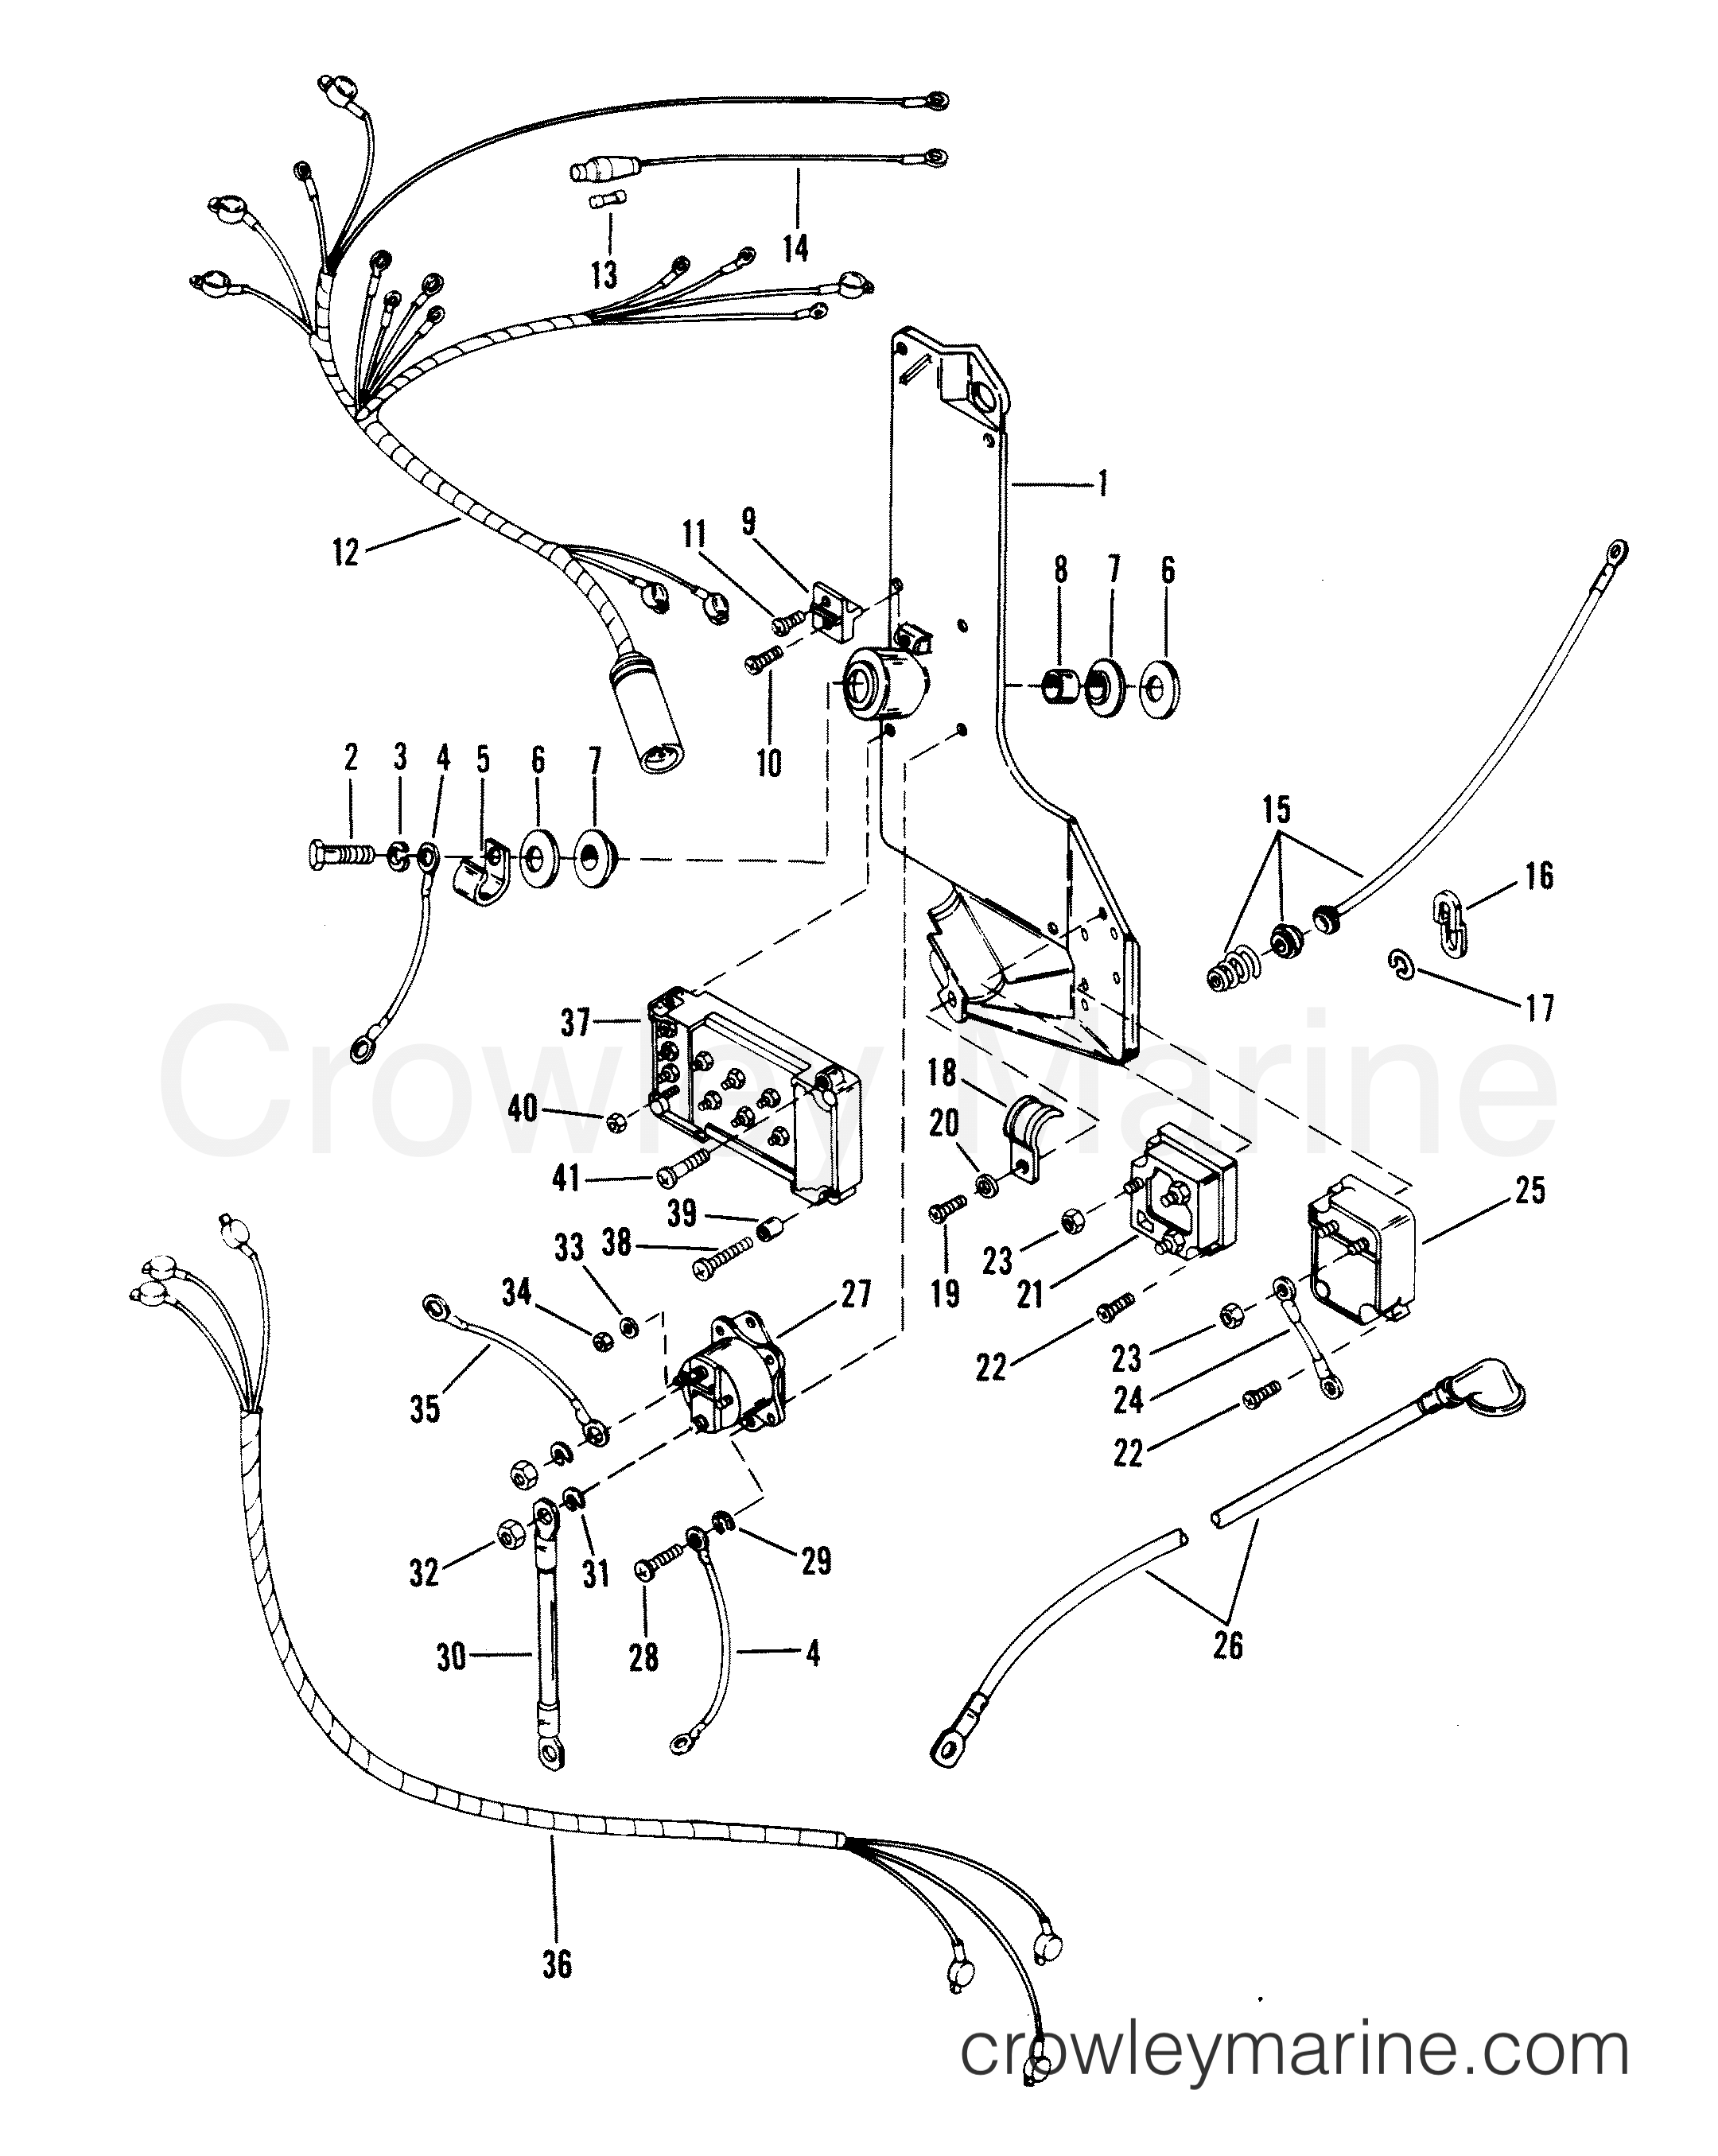 1996 evinrude skimmer snowmobile wiring diagram online wiring diagram Single Humbucker Single Volume Wiring mercury solenoid wiring schematic librarywiring harness starter solenoid and rectifier serial range